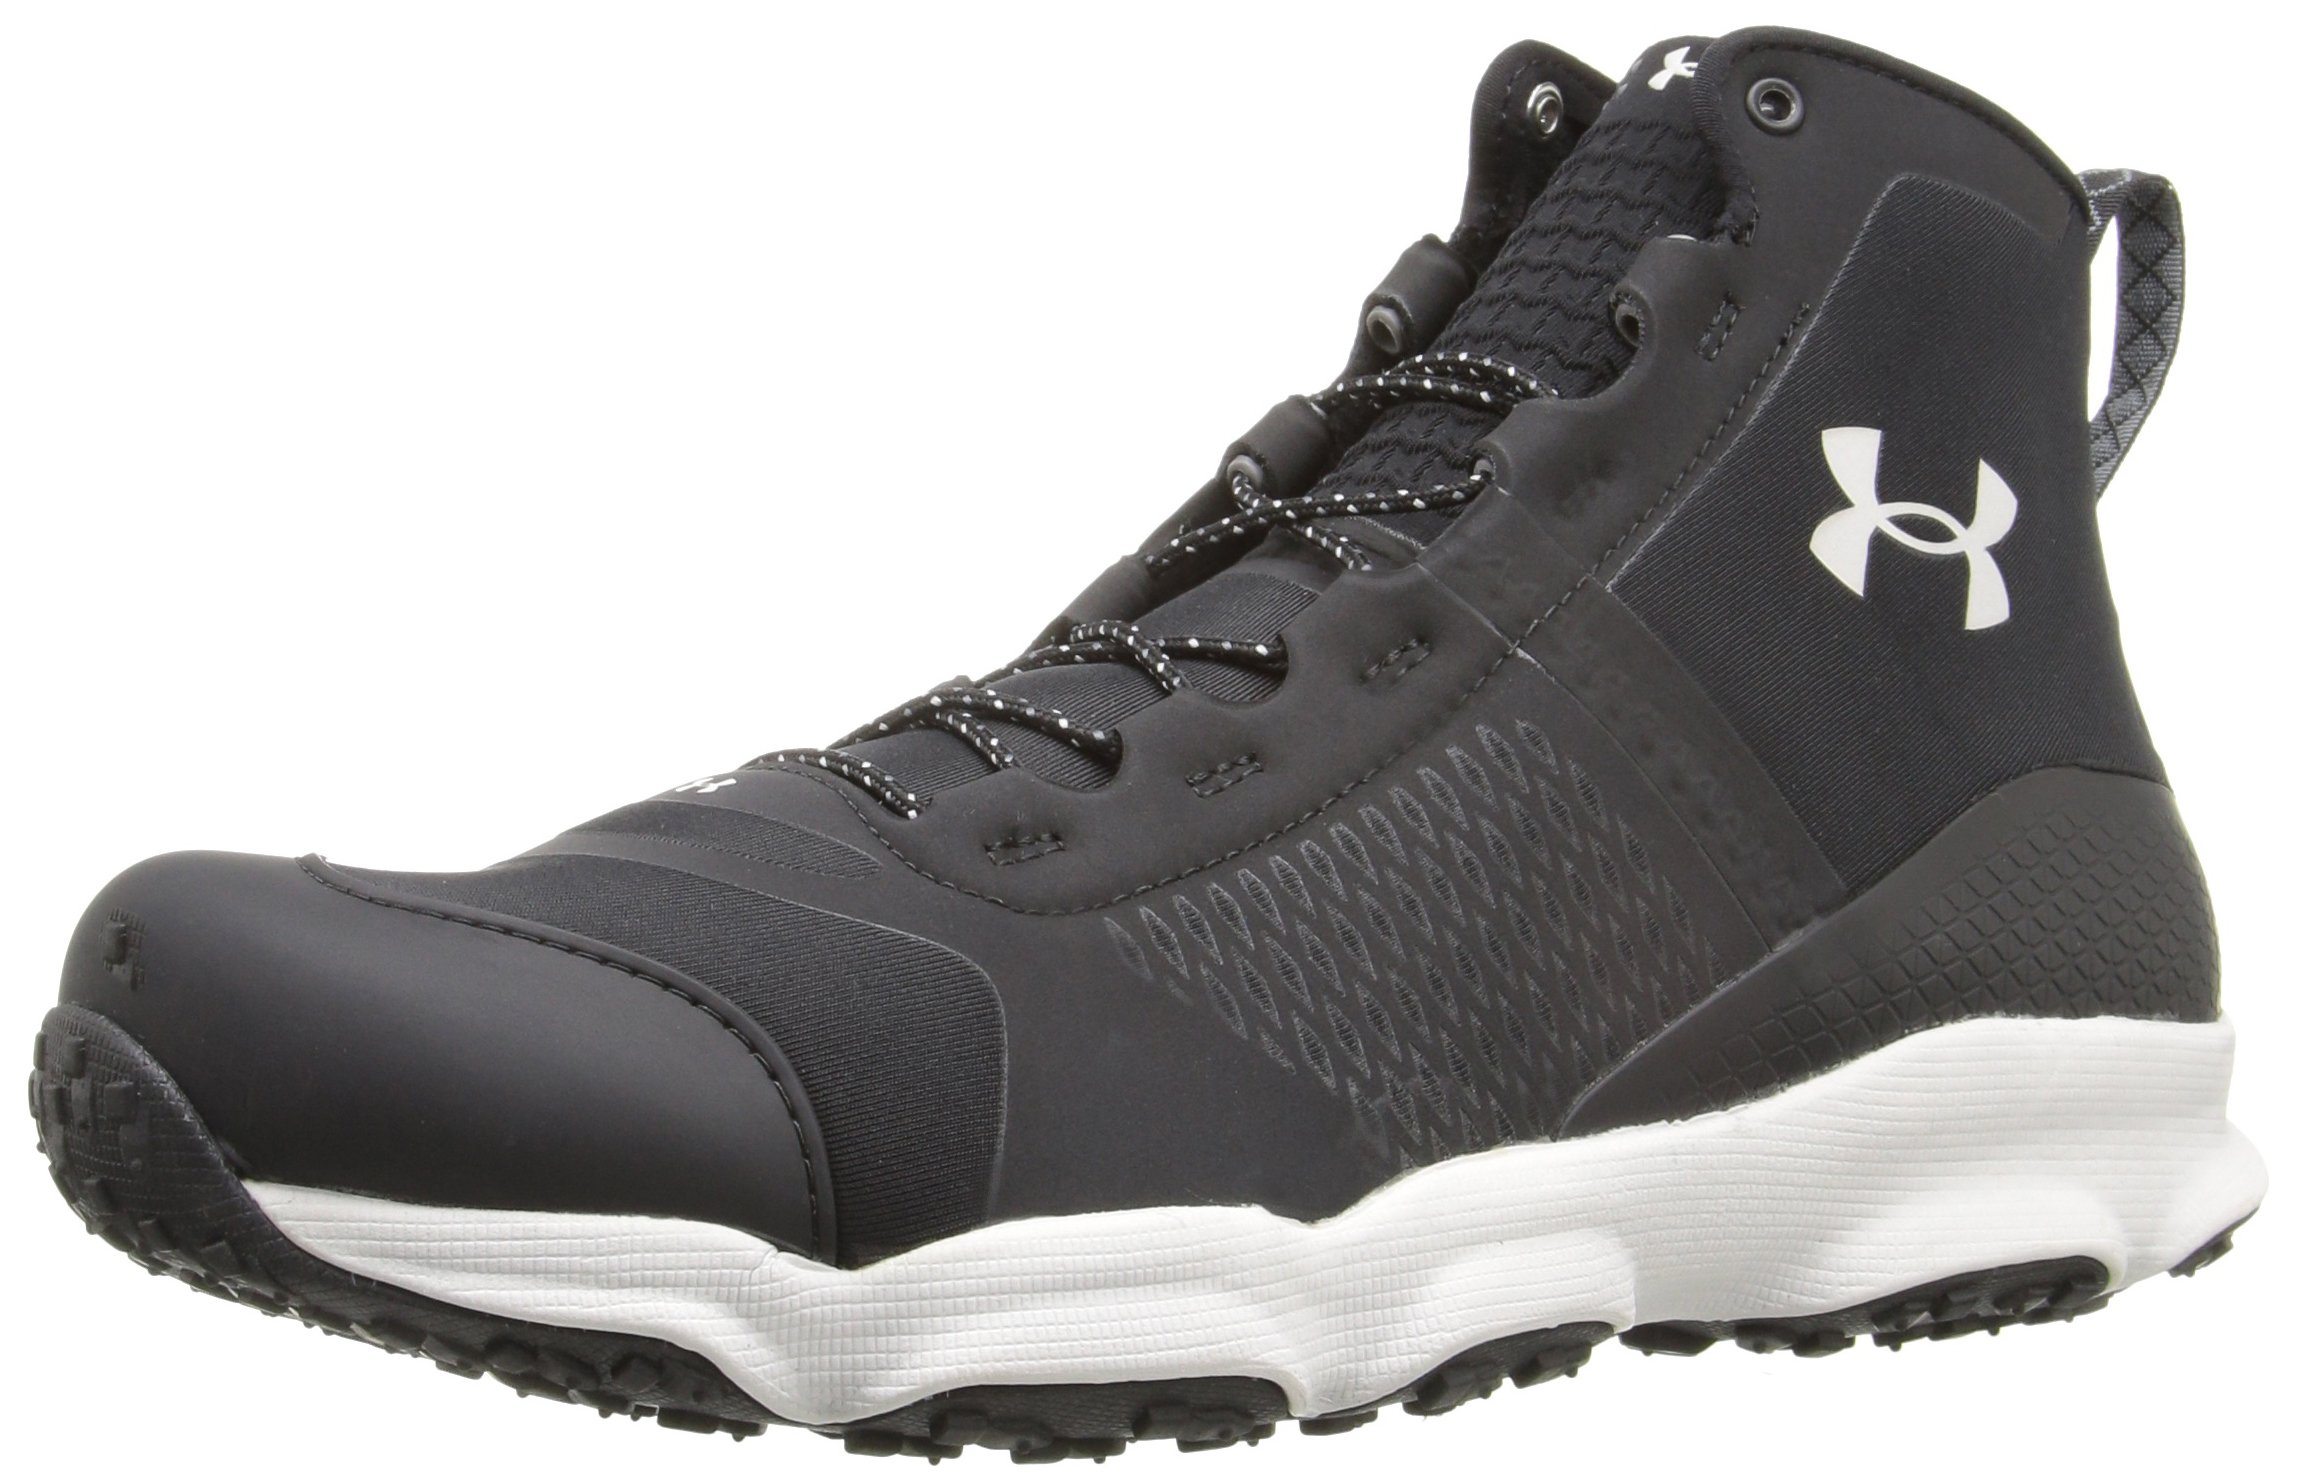 Under Armour Men's Speedfit Mid Hiking Boot, Black (005)/Smoke, 12